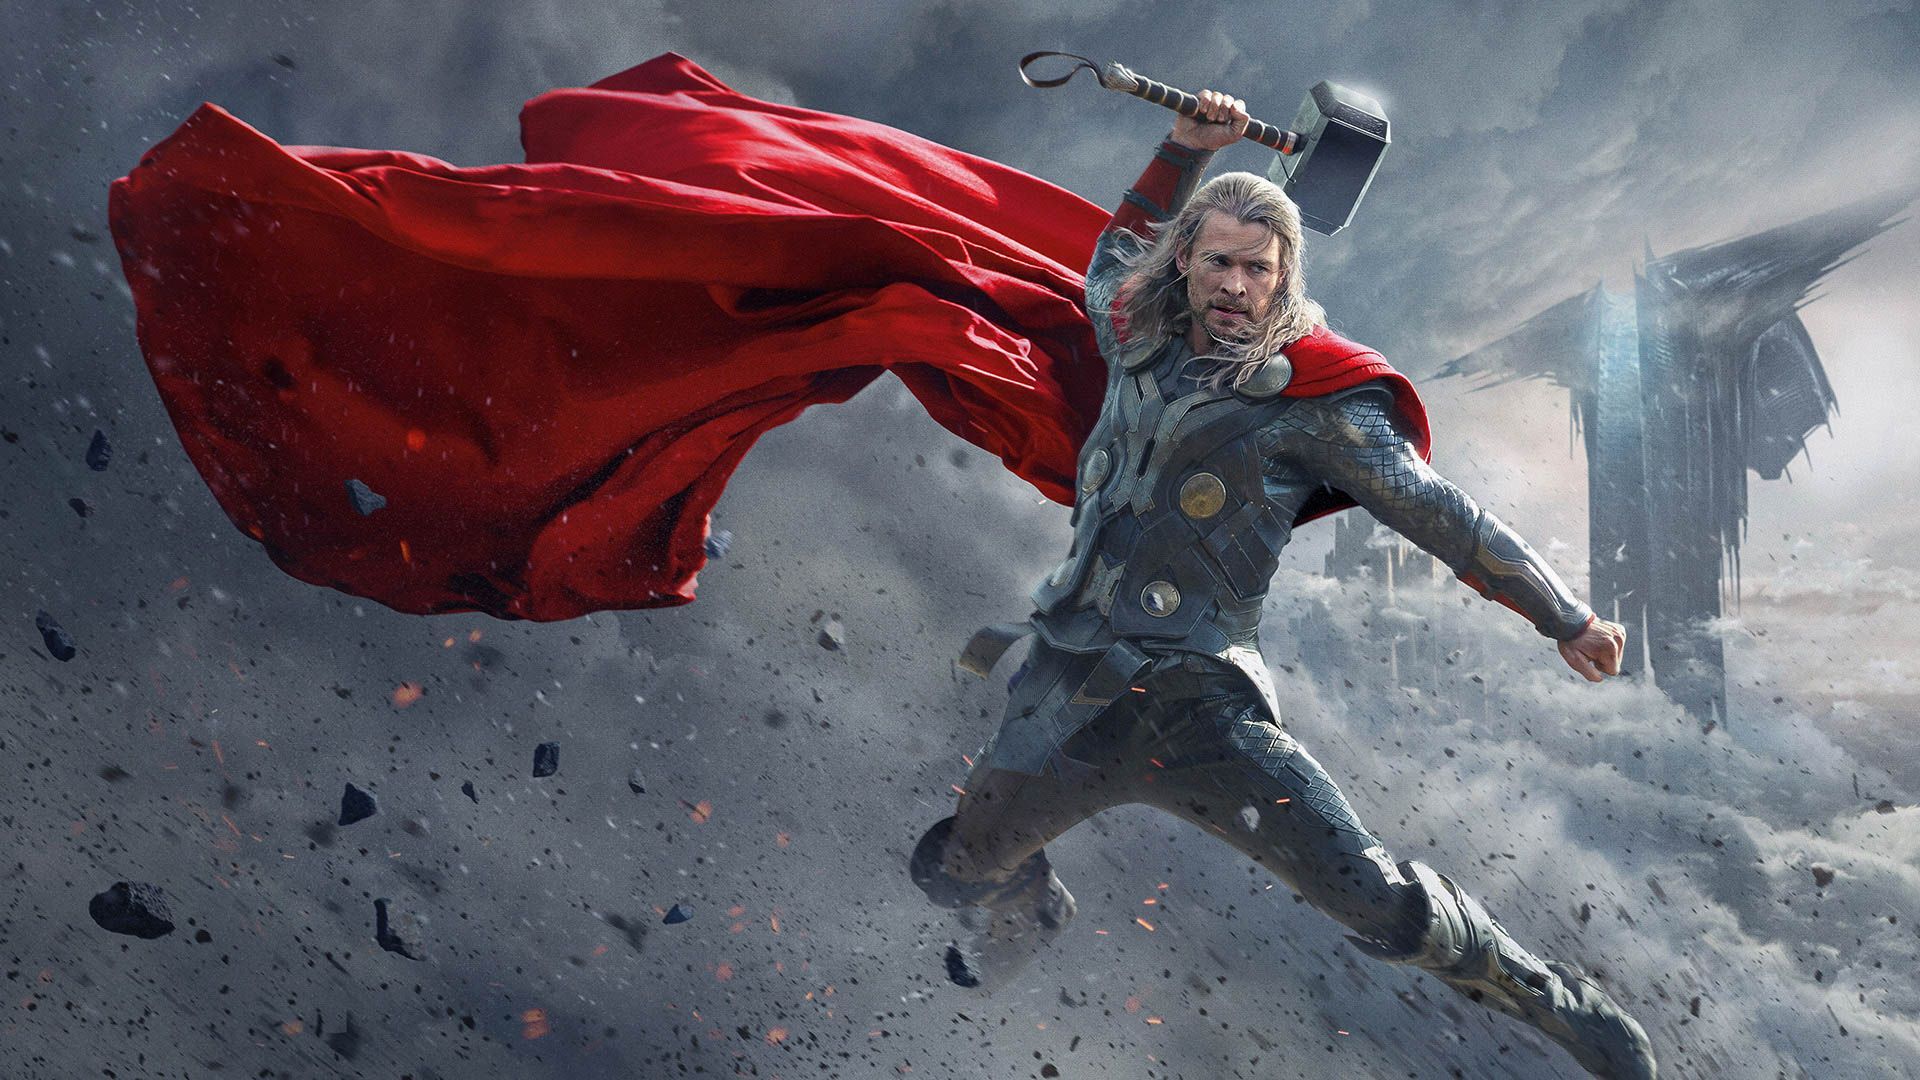 Chris Hemsworth HD Wallpapers in High Quality 2017 - All HD Wallpapers